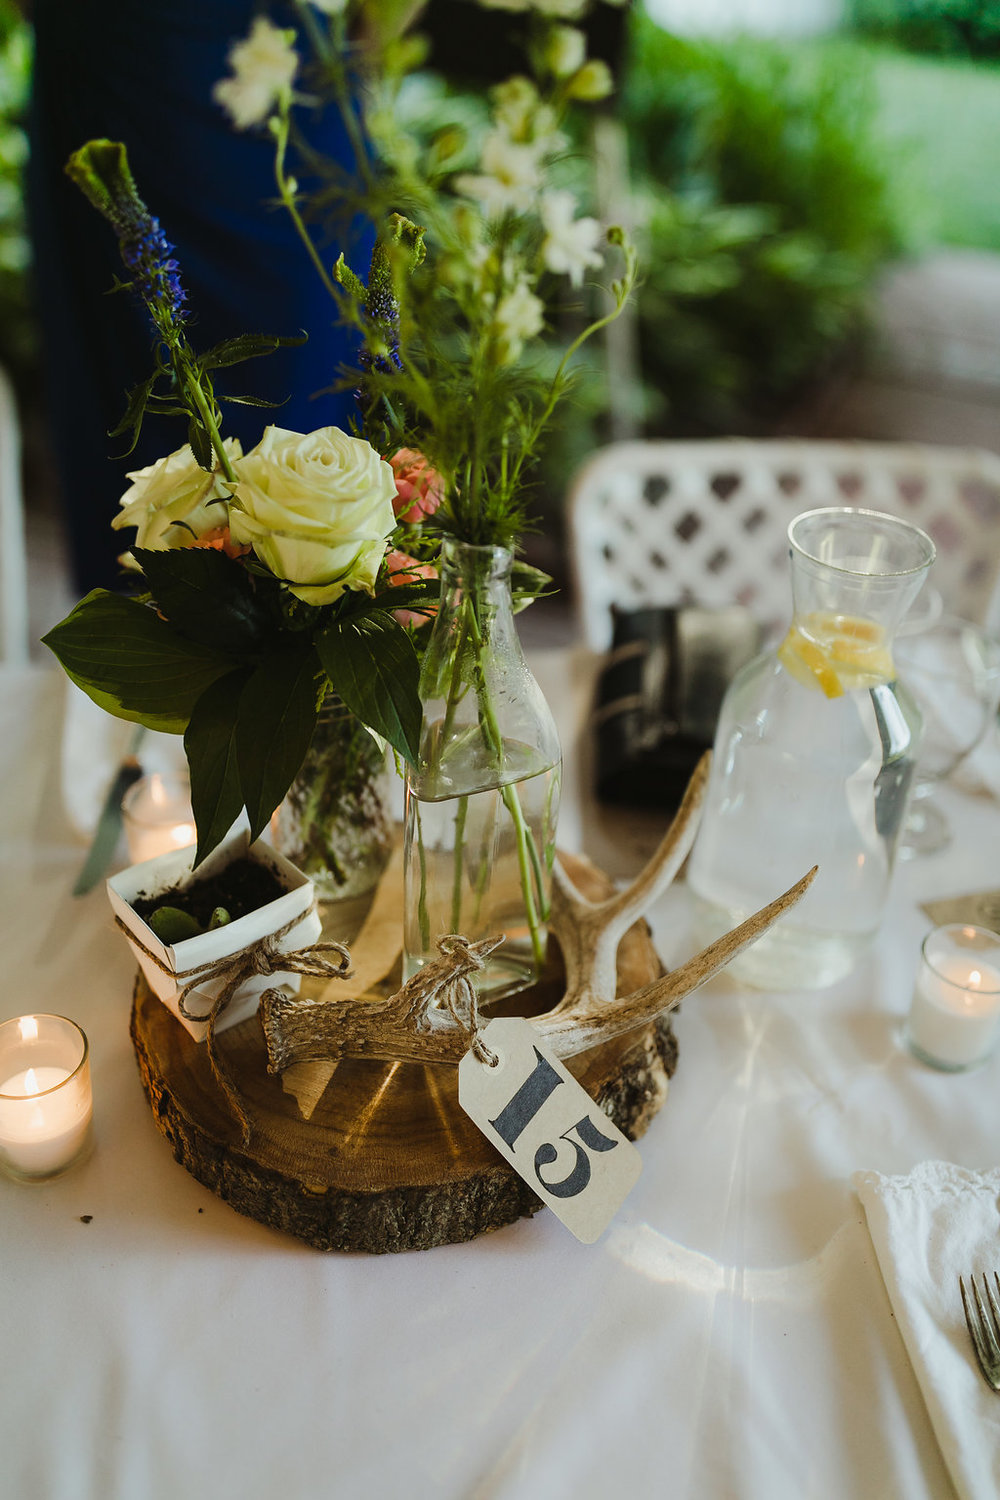 Ready to start planning your event or party, click   here   to make a general inquiry with Bird & Bumble.